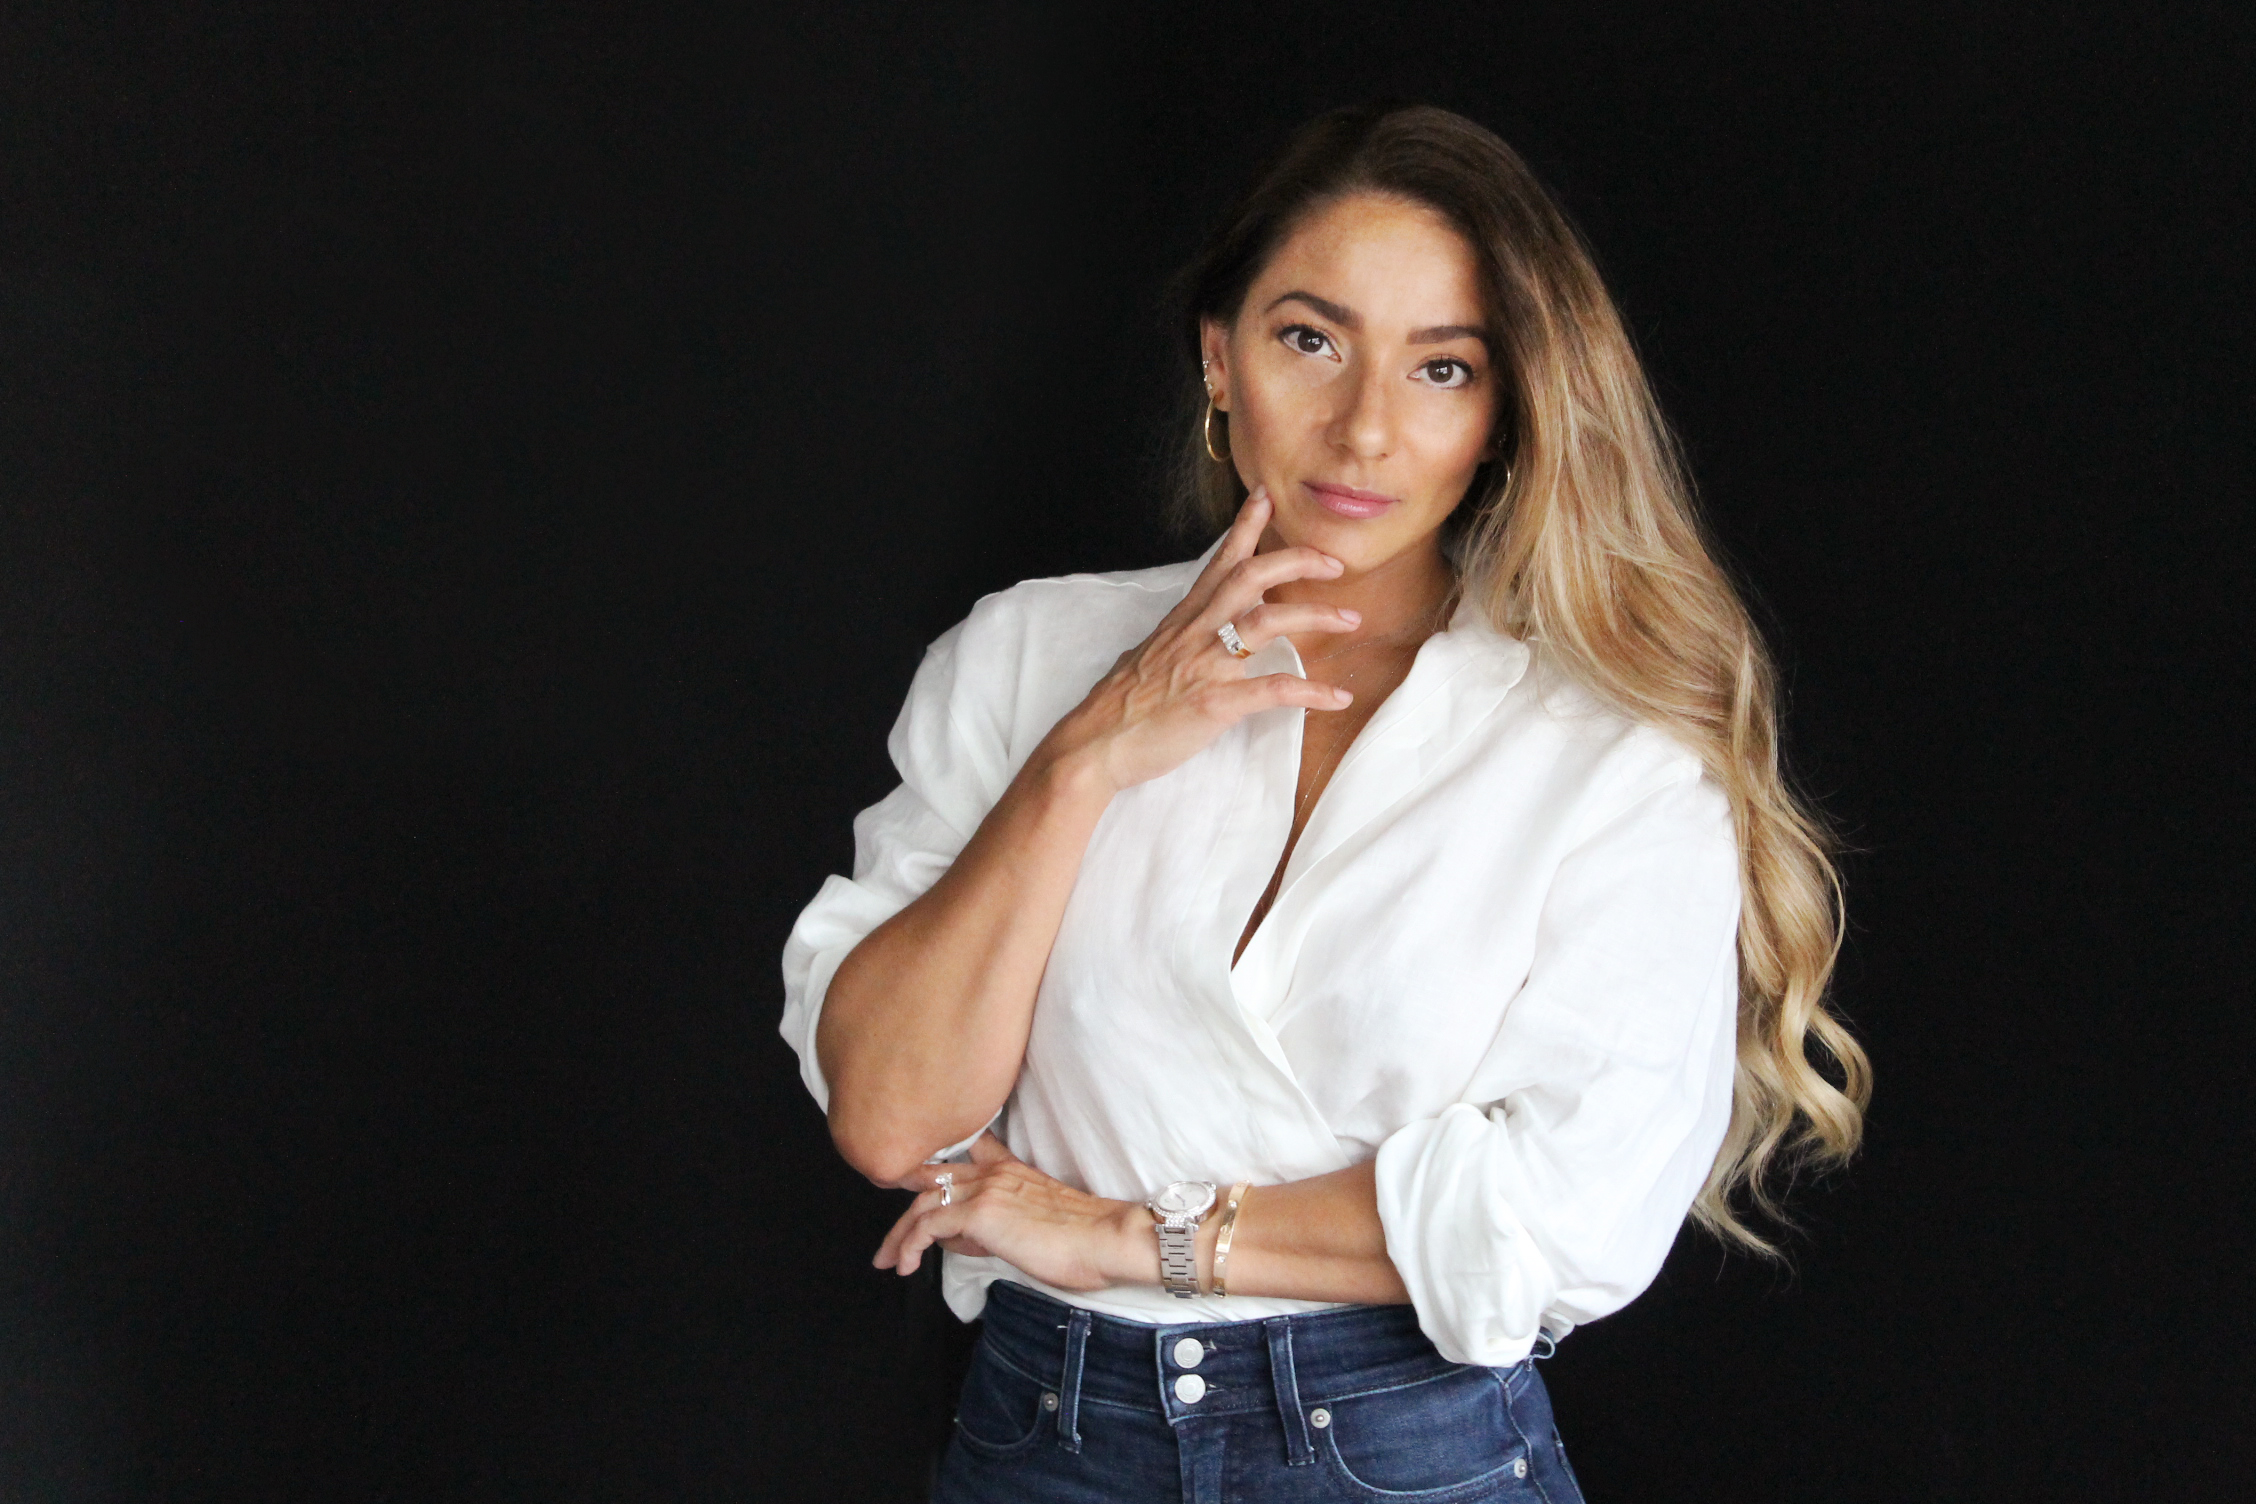 Conscious Jewelry Designer from NY Diamond District Shines in Tampa Bay